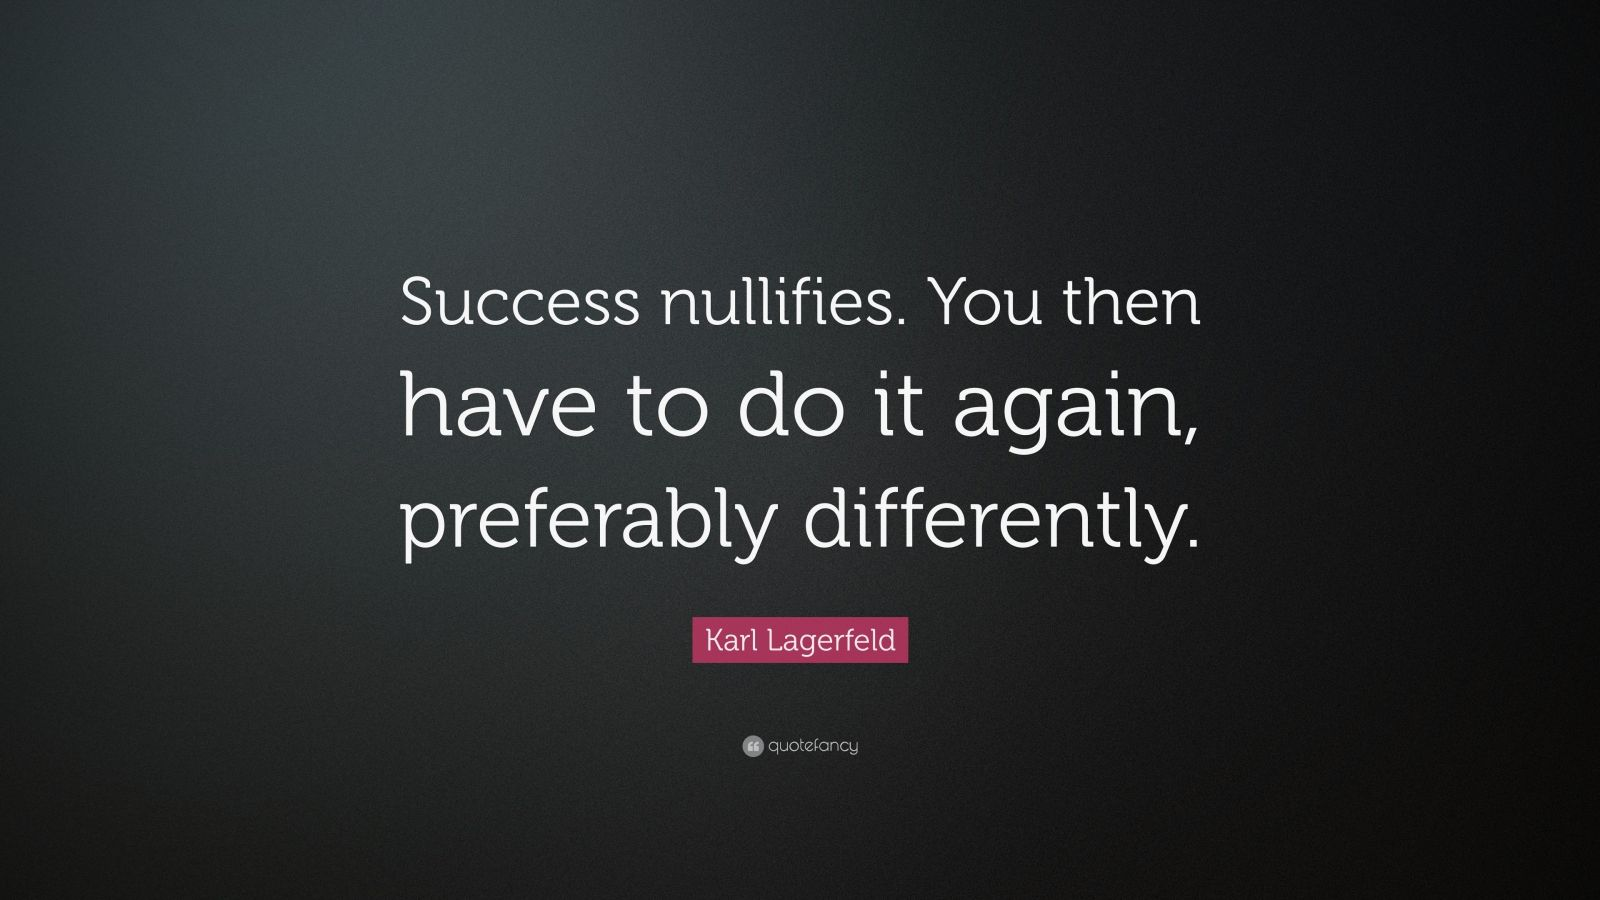 """Karl Lagerfeld Quote: """"Success nullifies. You then have to do it again, preferably differently."""""""